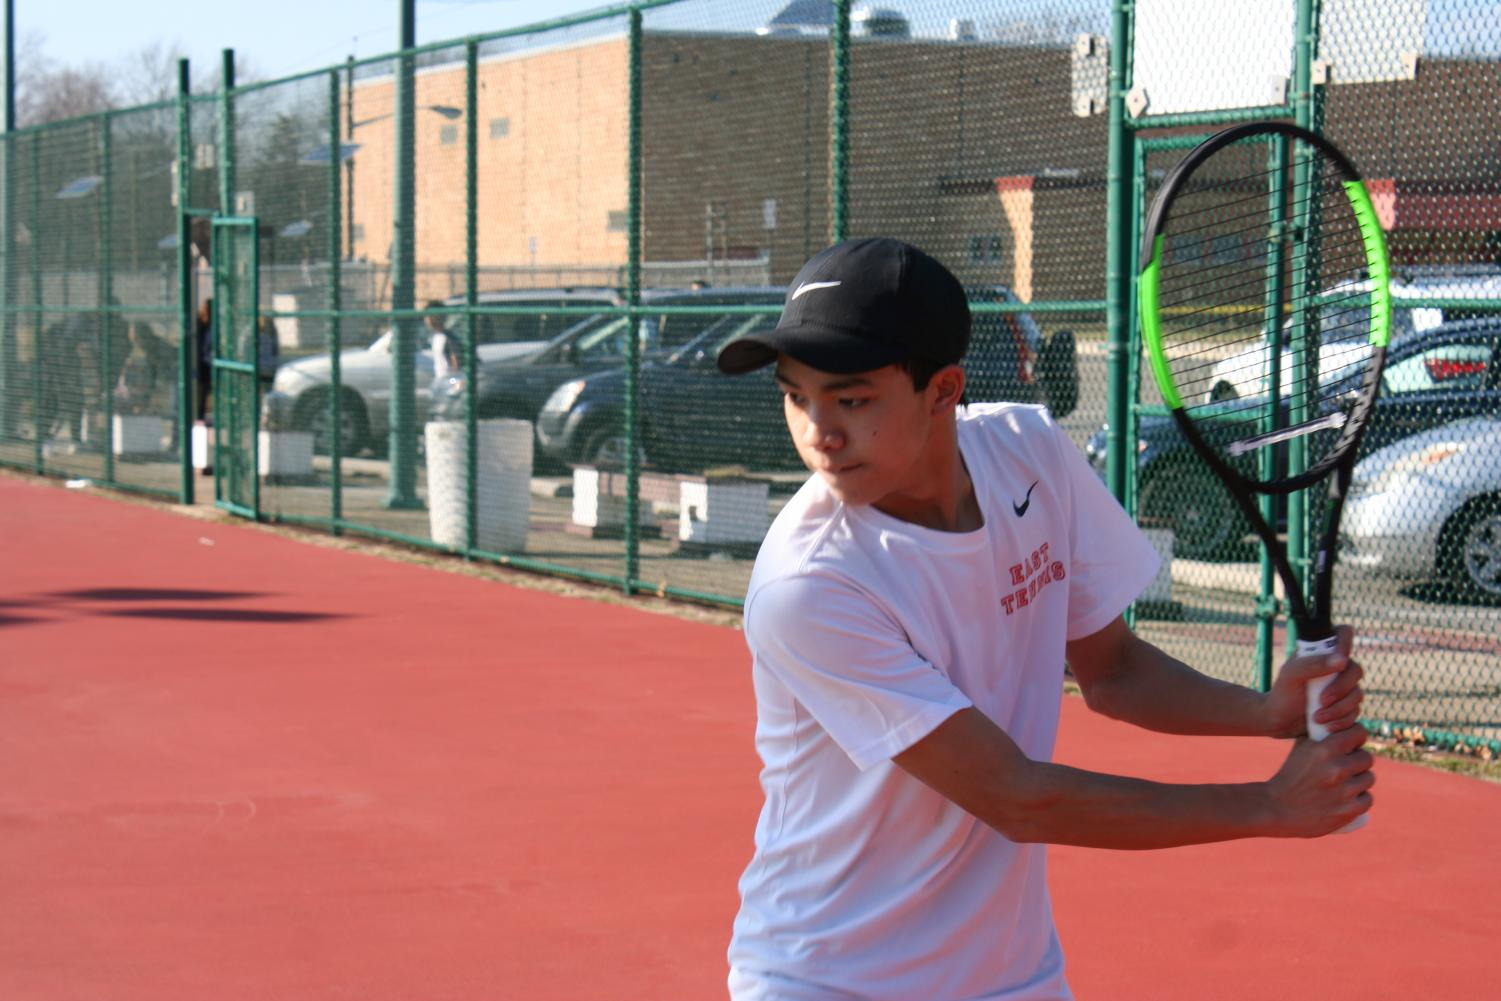 Yu ('19) prepares his stance as he prepares to hit a tennis ball.